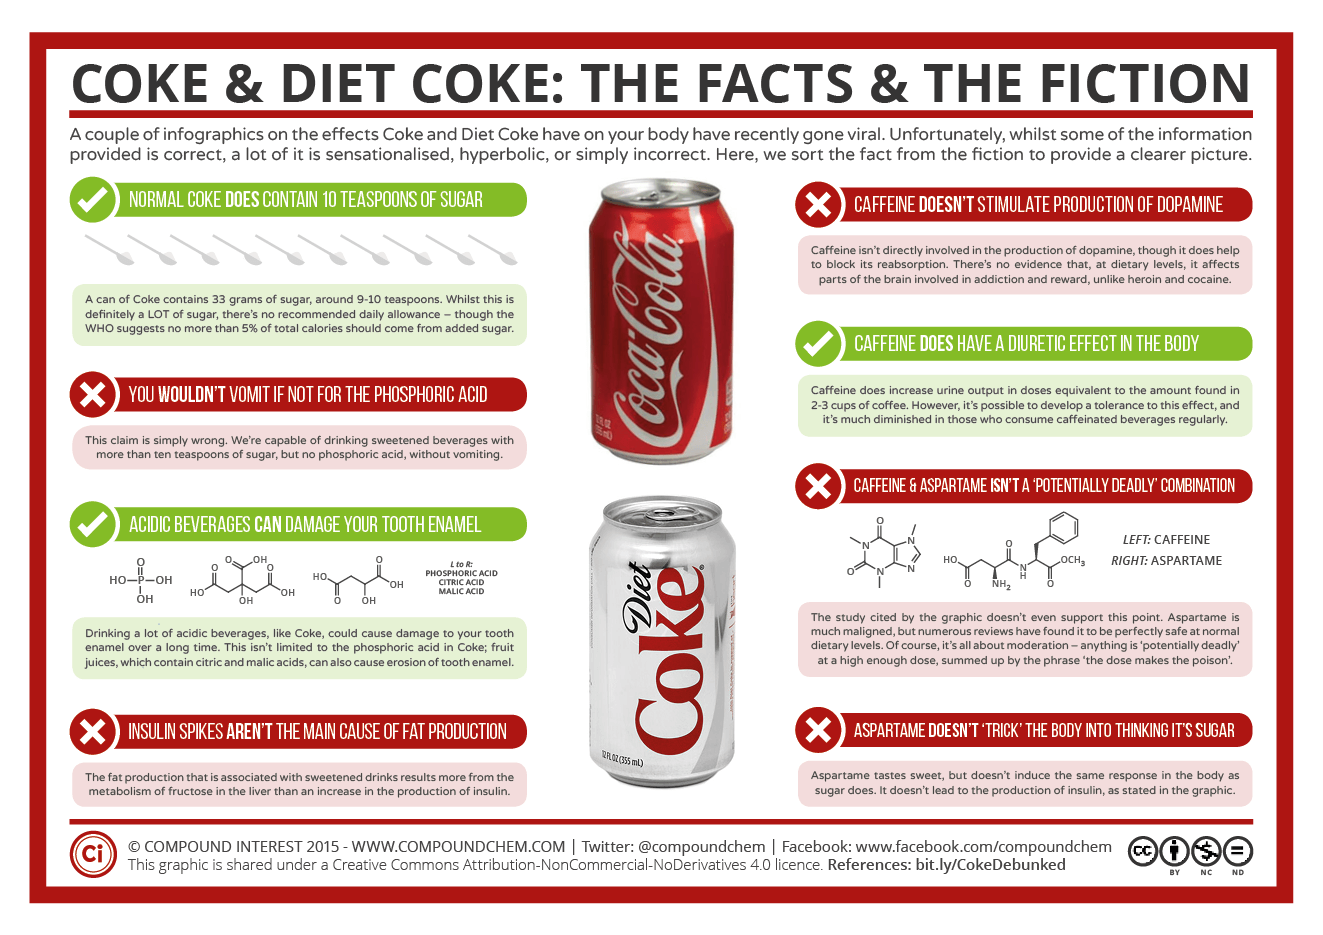 Coke & Diet Coke: The Facts and the Fiction   Compound Interest